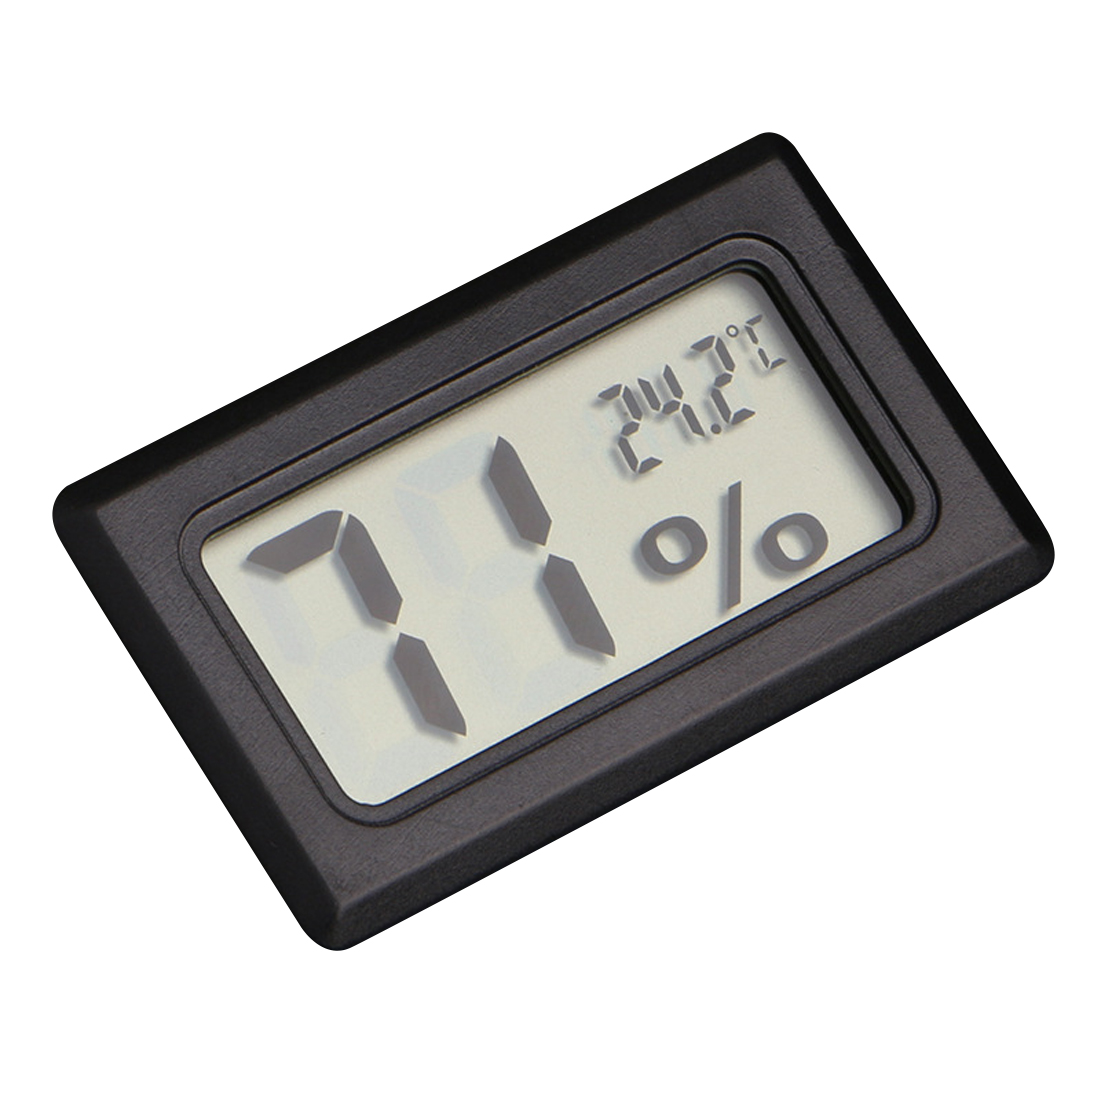 Temperature Sensor 1 PC Mini LCD Digital Thermometer Hygrometer Temperature Humidity Meter Gauge Instruments Indoor Convenient mini 2 0 lcd car indoor thermometer hygrometer black 10 c 50 c 20% 95% rh 1 x lr44